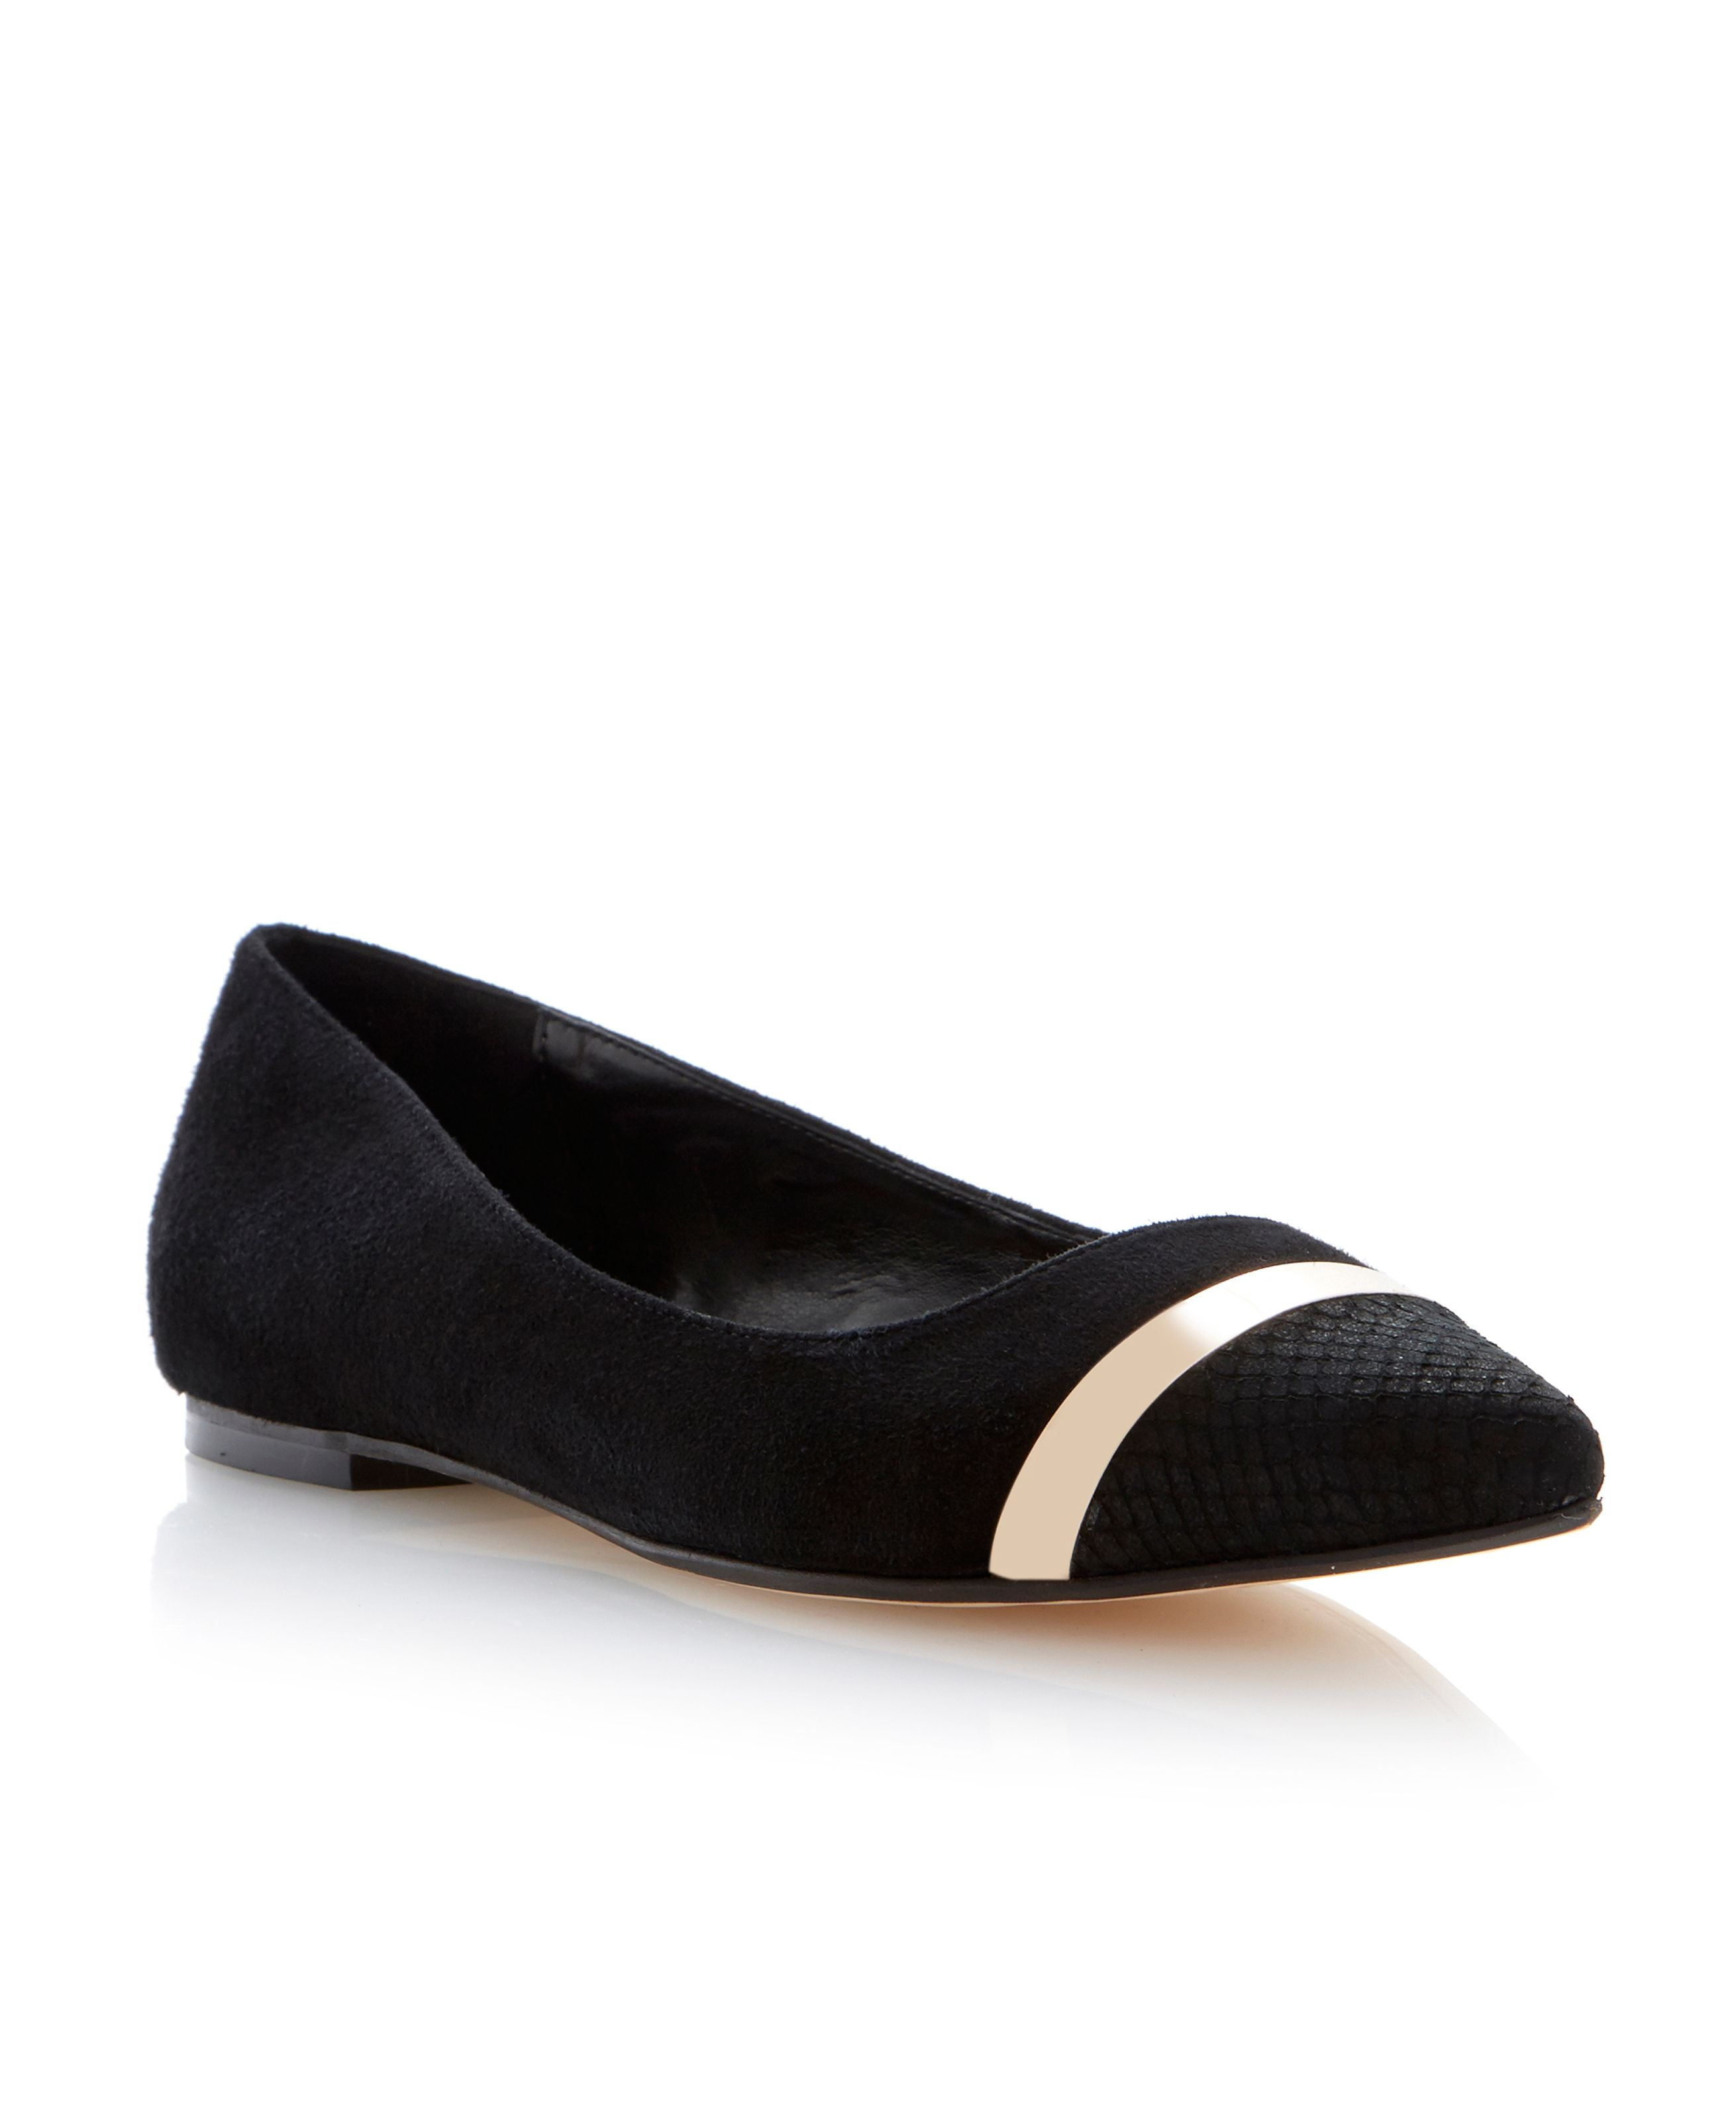 Ameretto pointed toe flat shoes